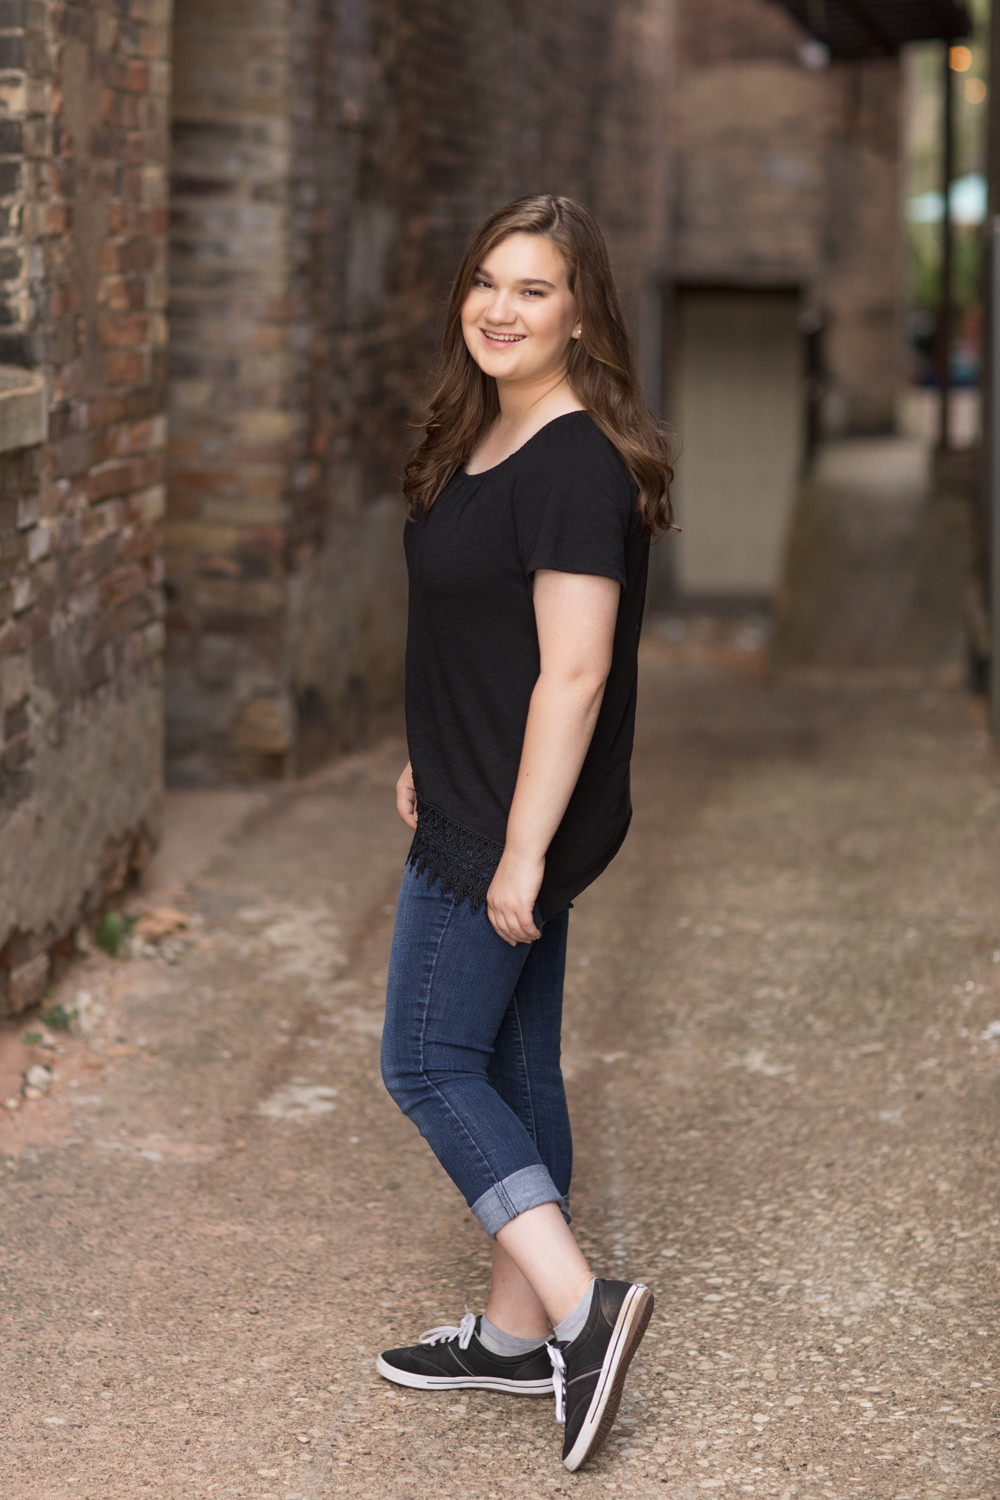 jill_hogan_senior_photography (2 of 17).jpg